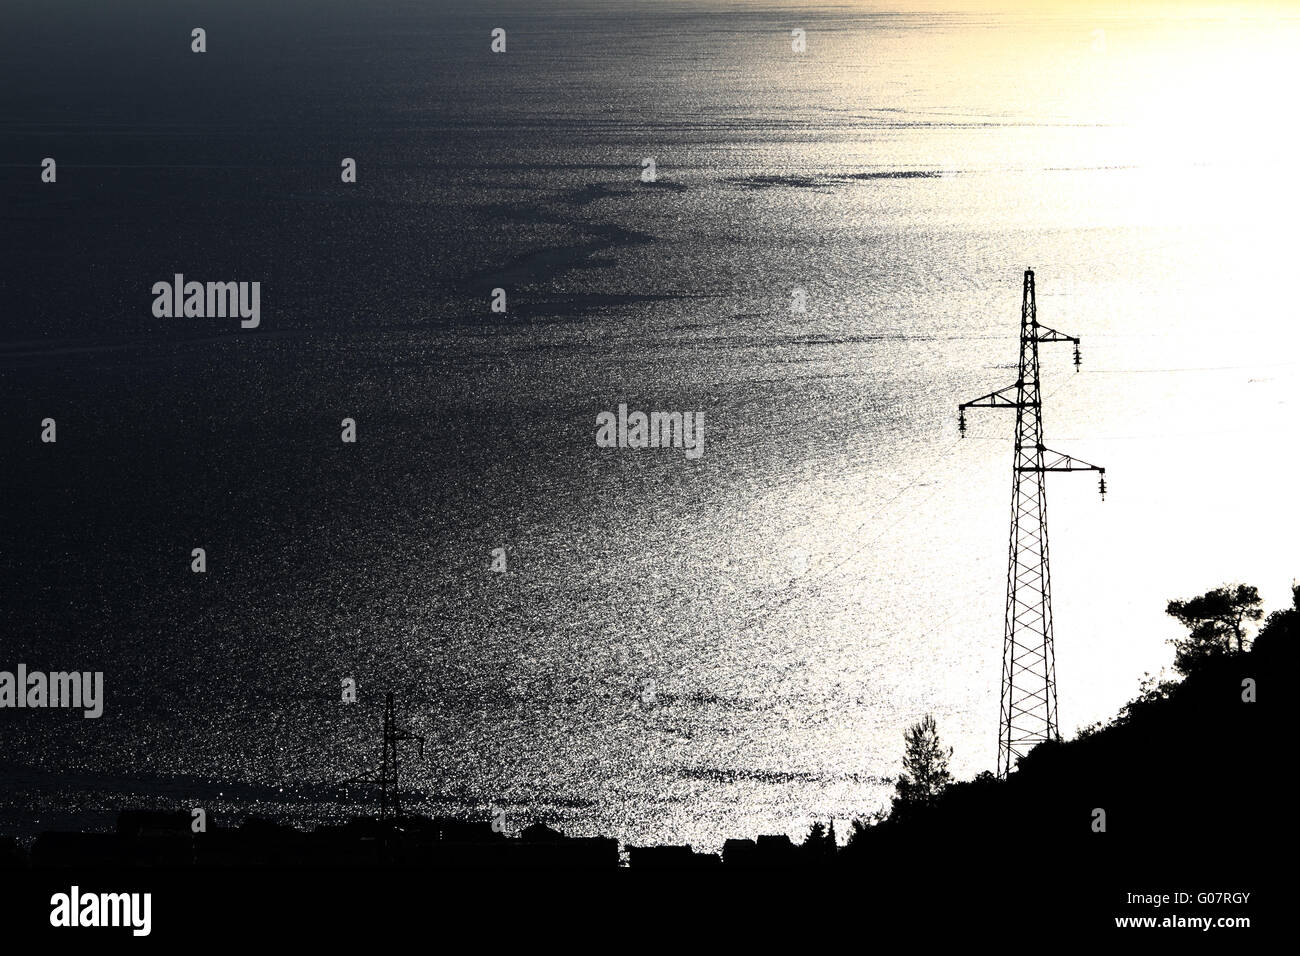 Electricity pylon with many cables on blue and yellow sea - Stock Image